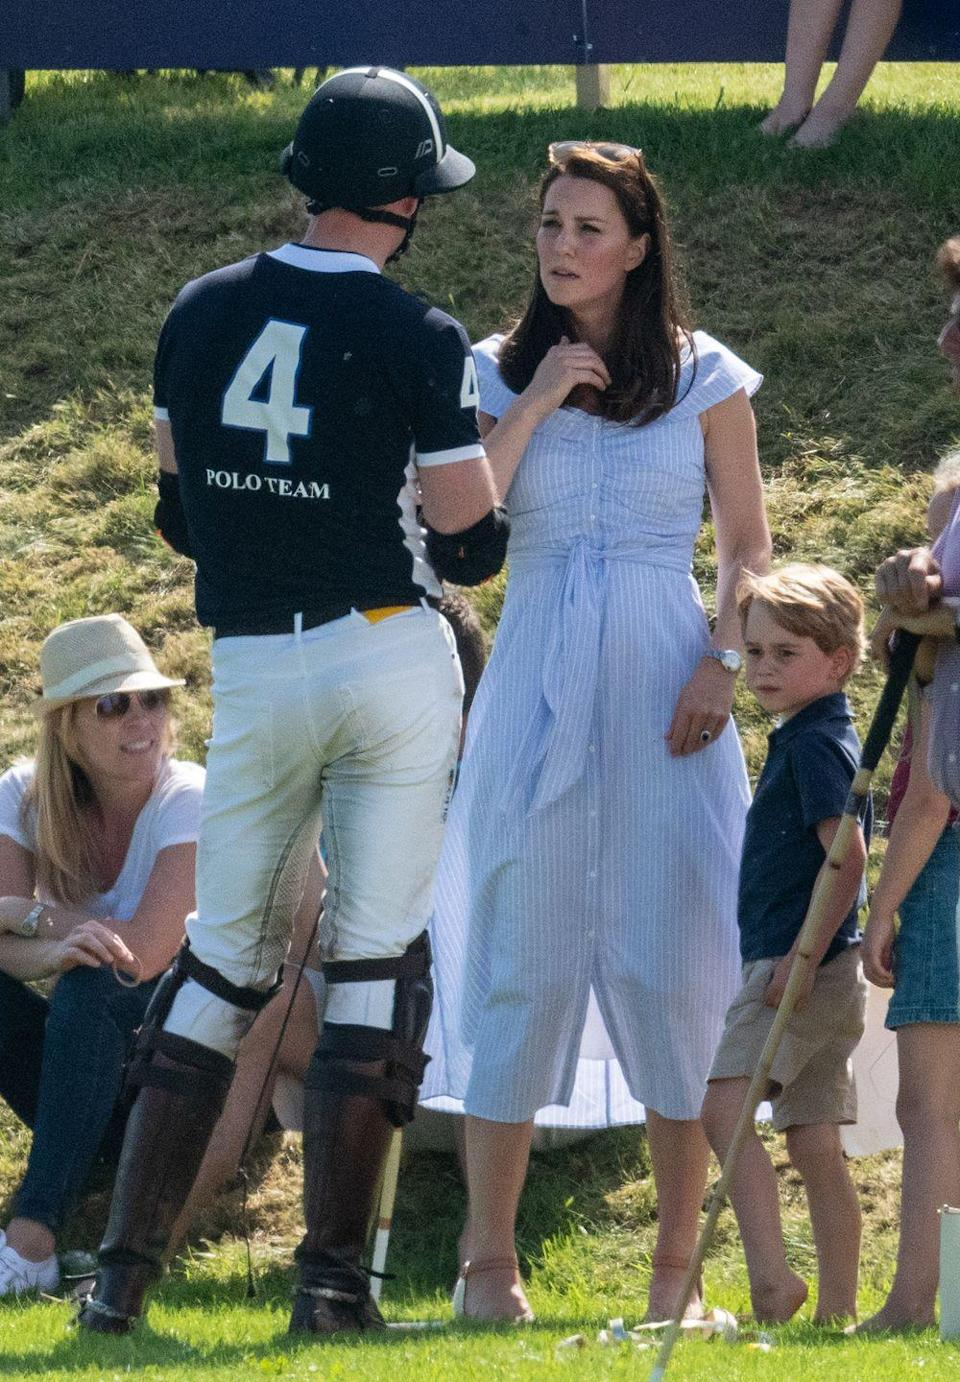 "<p>Duchess Kate wore another blue dress just hours after the Trooping the Colour parade! <a href=""https://www.townandcountrymag.com/society/tradition/a21252562/kate-middleton-zara-blue-striped-dress-polo-match/"" rel=""nofollow noopener"" target=""_blank"" data-ylk=""slk:The Duchess wore a $70 off-the-shoulder dress by Zara"" class=""link rapid-noclick-resp"">The Duchess wore a $70 off-the-shoulder dress by Zara</a> with espadrilles and sunglasses while attending Prince William's charity polo match with Prince George and Princess Charlotte. </p><p><a class=""link rapid-noclick-resp"" href=""https://www.zara.com/us/en/striped-off-the-shoulder-dress-p04043095.html"" rel=""nofollow noopener"" target=""_blank"" data-ylk=""slk:SHOP NOW"">SHOP NOW</a> Zara <em>Striped Off-the-Shoulder Dress, $69.90 </em><br></p>"